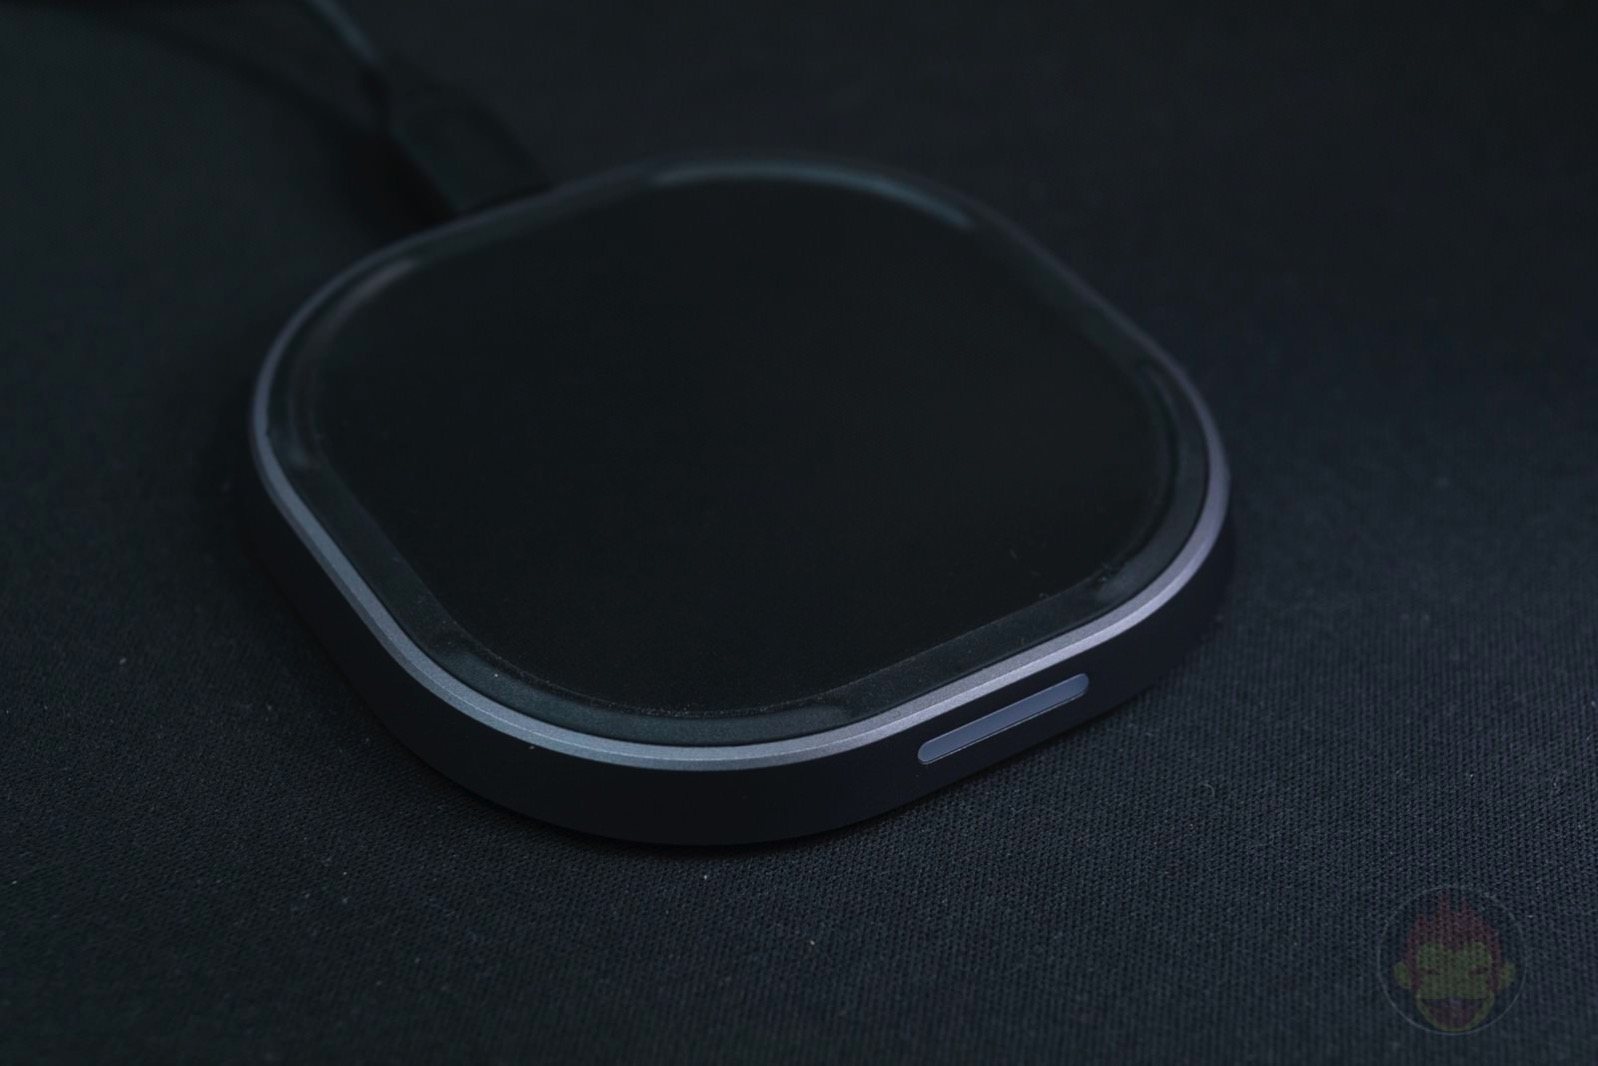 TUNEWEAR 10W Plus WIRELESS CHARGER 04